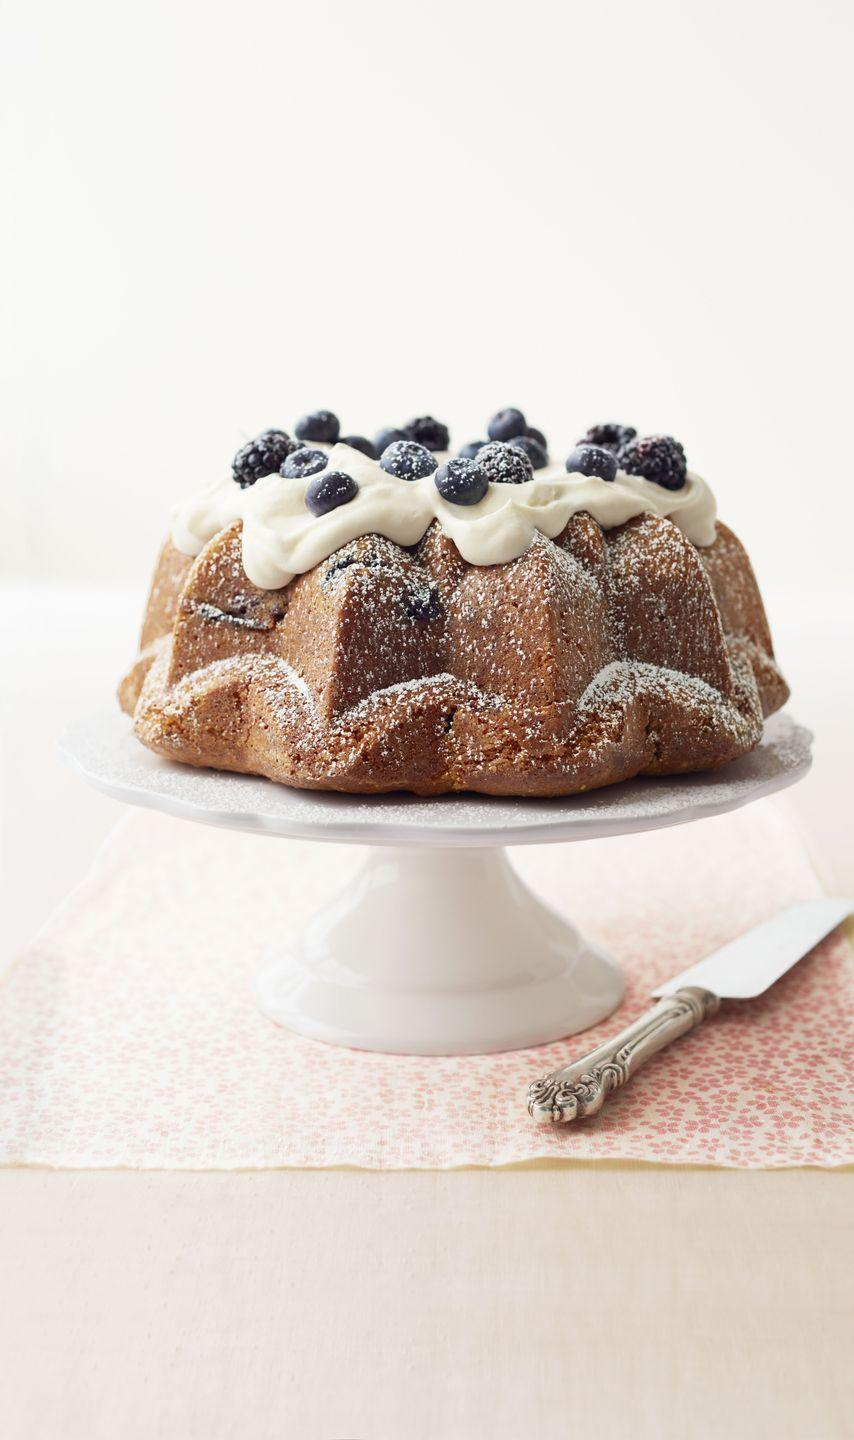 """<p>Two cups of berries baked in and sprinkled on top give true meaning to this Bundt's name. Try a mix of red and blue berries for the most patriotic pastry.</p><p><em><a href=""""https://www.goodhousekeeping.com/food-recipes/a15192/bursting-berries-lemon-curd-cake-recipe-ghk0513/"""" rel=""""nofollow noopener"""" target=""""_blank"""" data-ylk=""""slk:Get the recipe for Bursting-with-Berries Lemon Curd Cake »"""" class=""""link rapid-noclick-resp"""">Get the recipe for Bursting-with-Berries Lemon Curd Cake »</a></em></p><p><strong>RELATED: </strong><a href=""""https://www.goodhousekeeping.com/holidays/g1748/red-white-blue-july-fourth-desserts/"""" rel=""""nofollow noopener"""" target=""""_blank"""" data-ylk=""""slk:30 Red, White, and Blue Desserts to Celebrate 4th of July In the Sweetest Way"""" class=""""link rapid-noclick-resp"""">30 Red, White, and Blue Desserts to Celebrate 4th of July In the Sweetest Way</a></p>"""